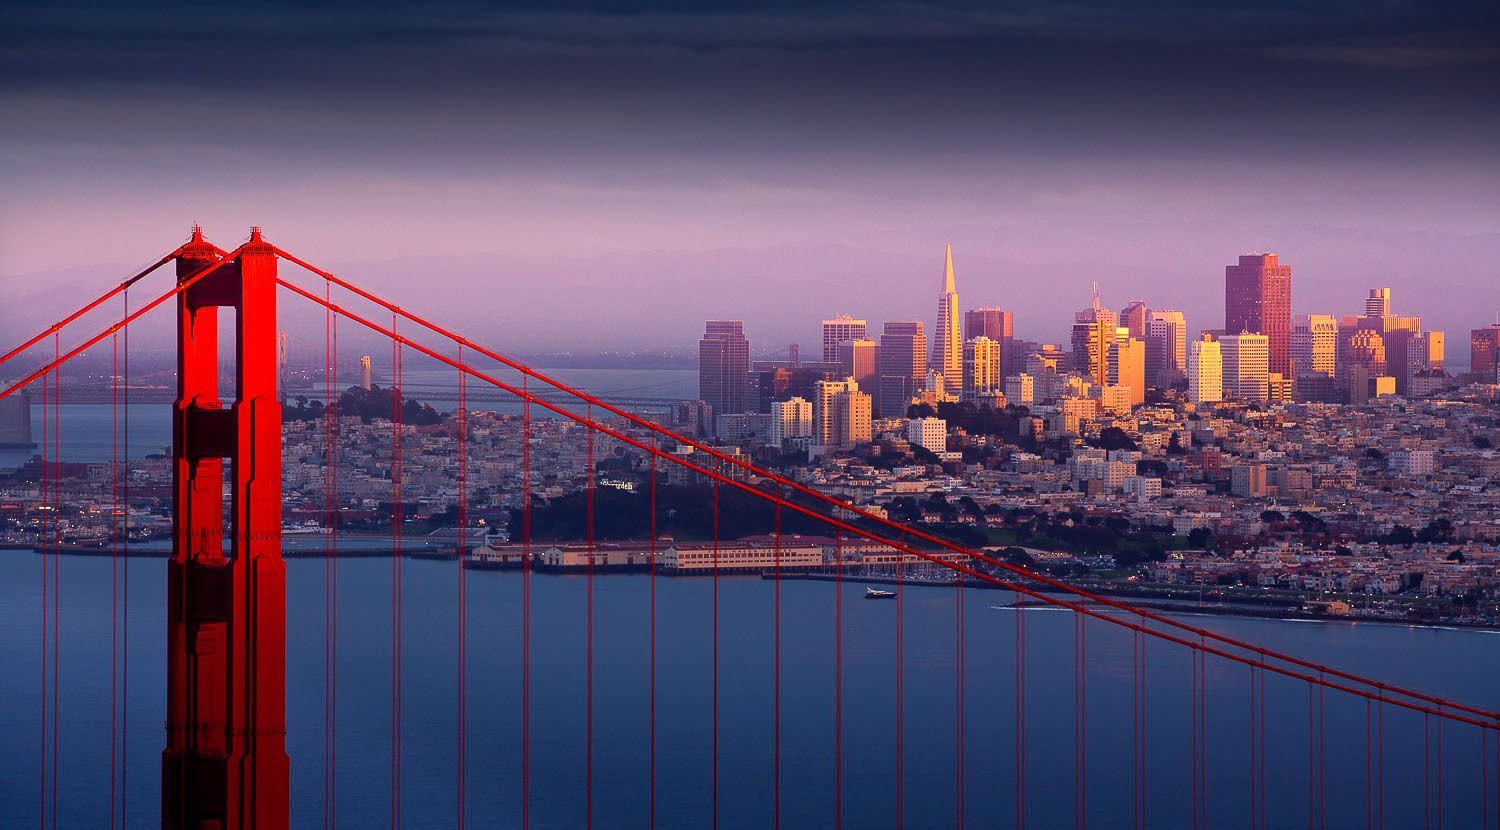 SanFrancisco_0-compressed